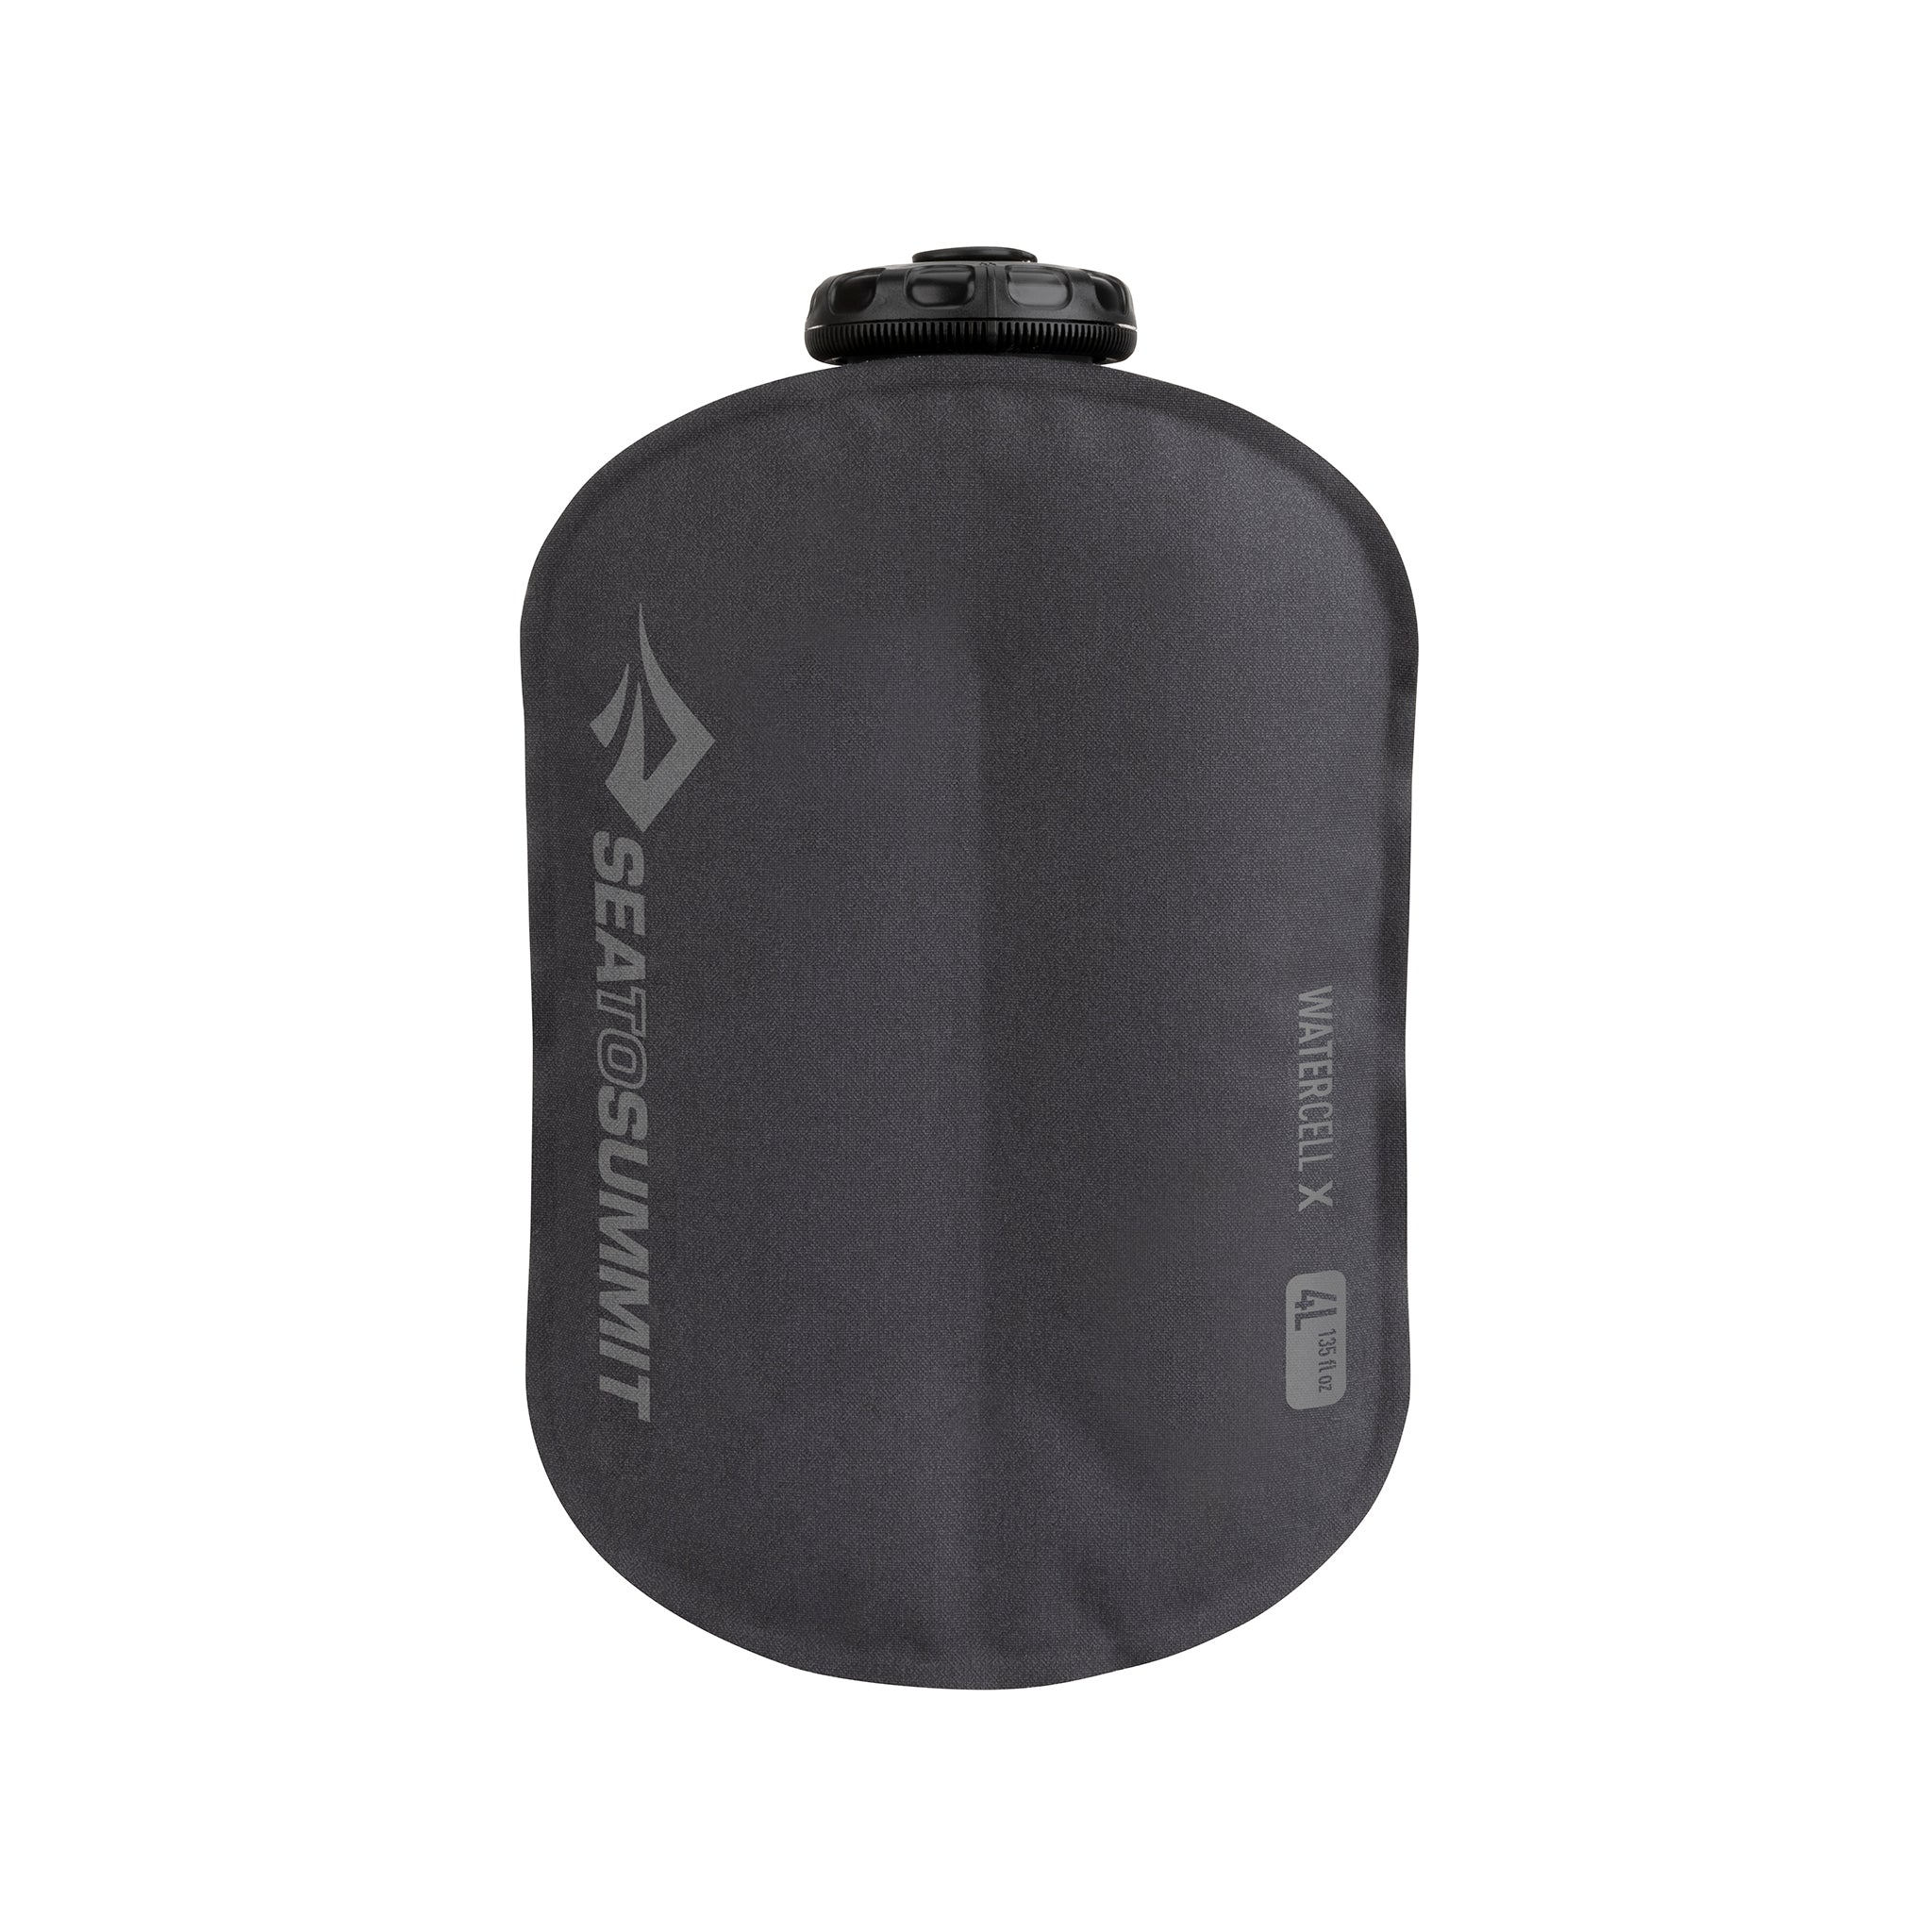 Wartercell X _ durable reservoir water bag